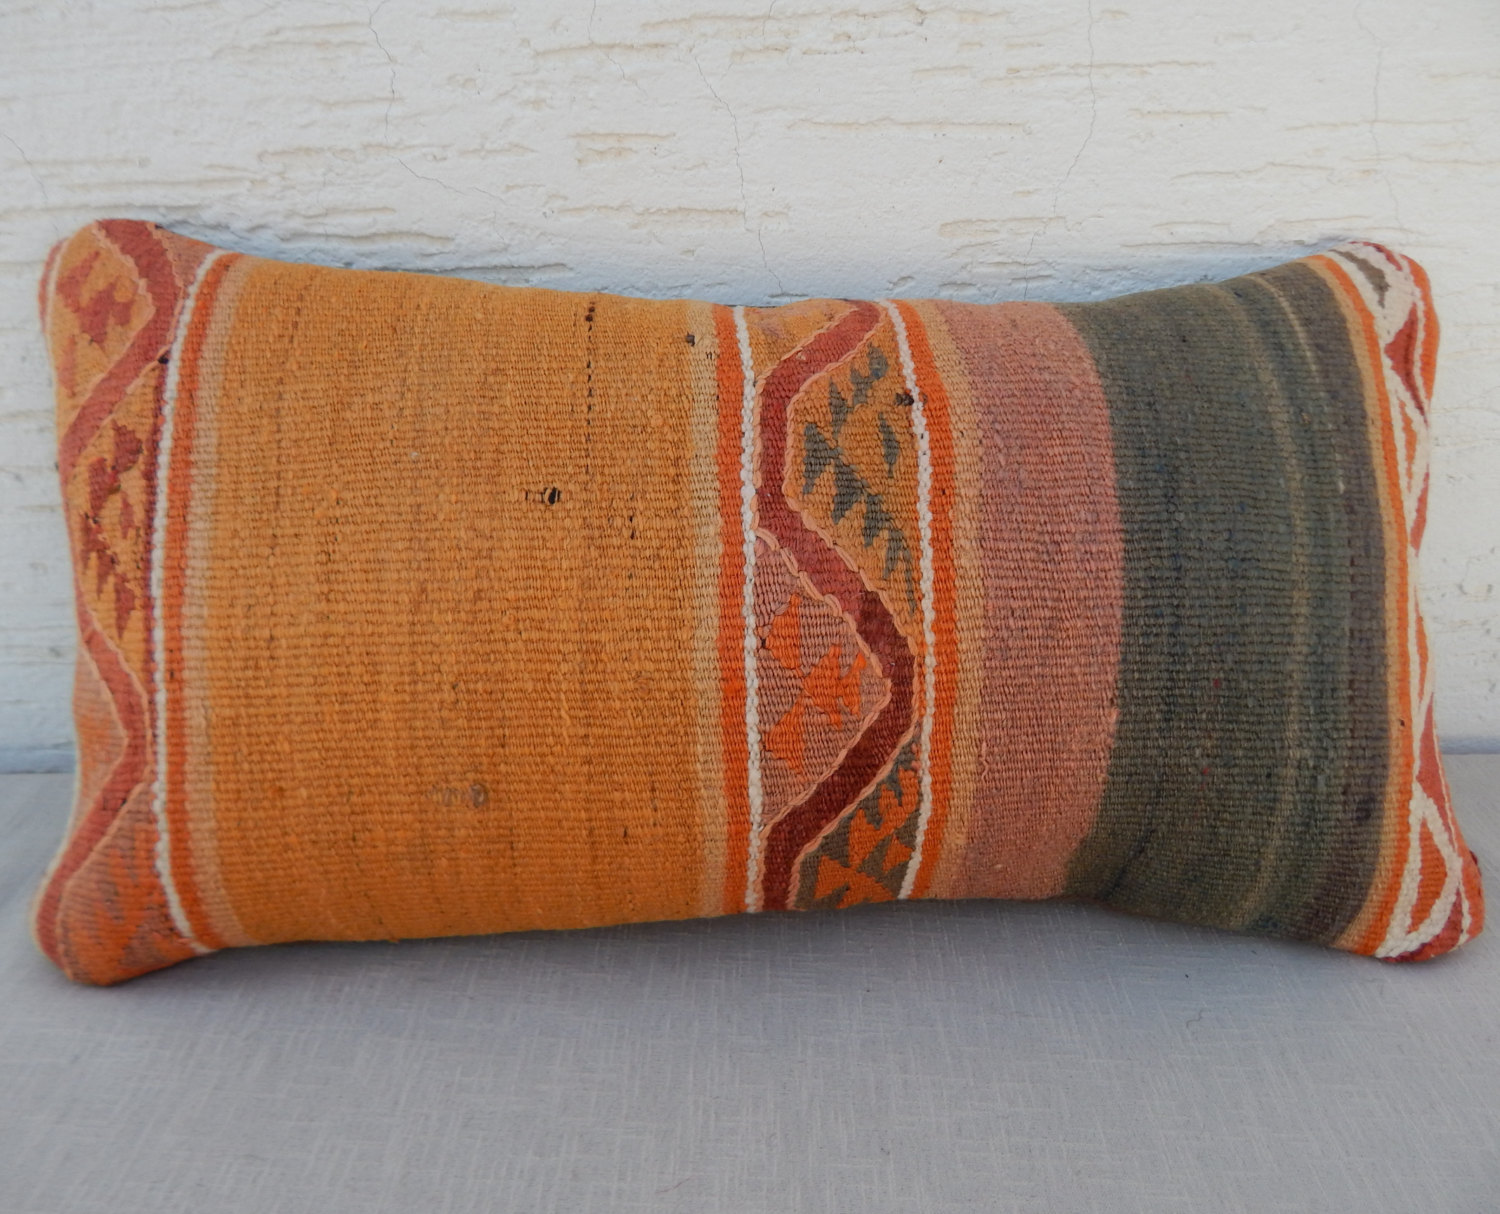 Decorative Bolster Pillow Covers : ORANGE Decor 10x20 inch Mini Country Decor Decorative Kilim Pillow Cover-Mini Kilim Lumbar ...